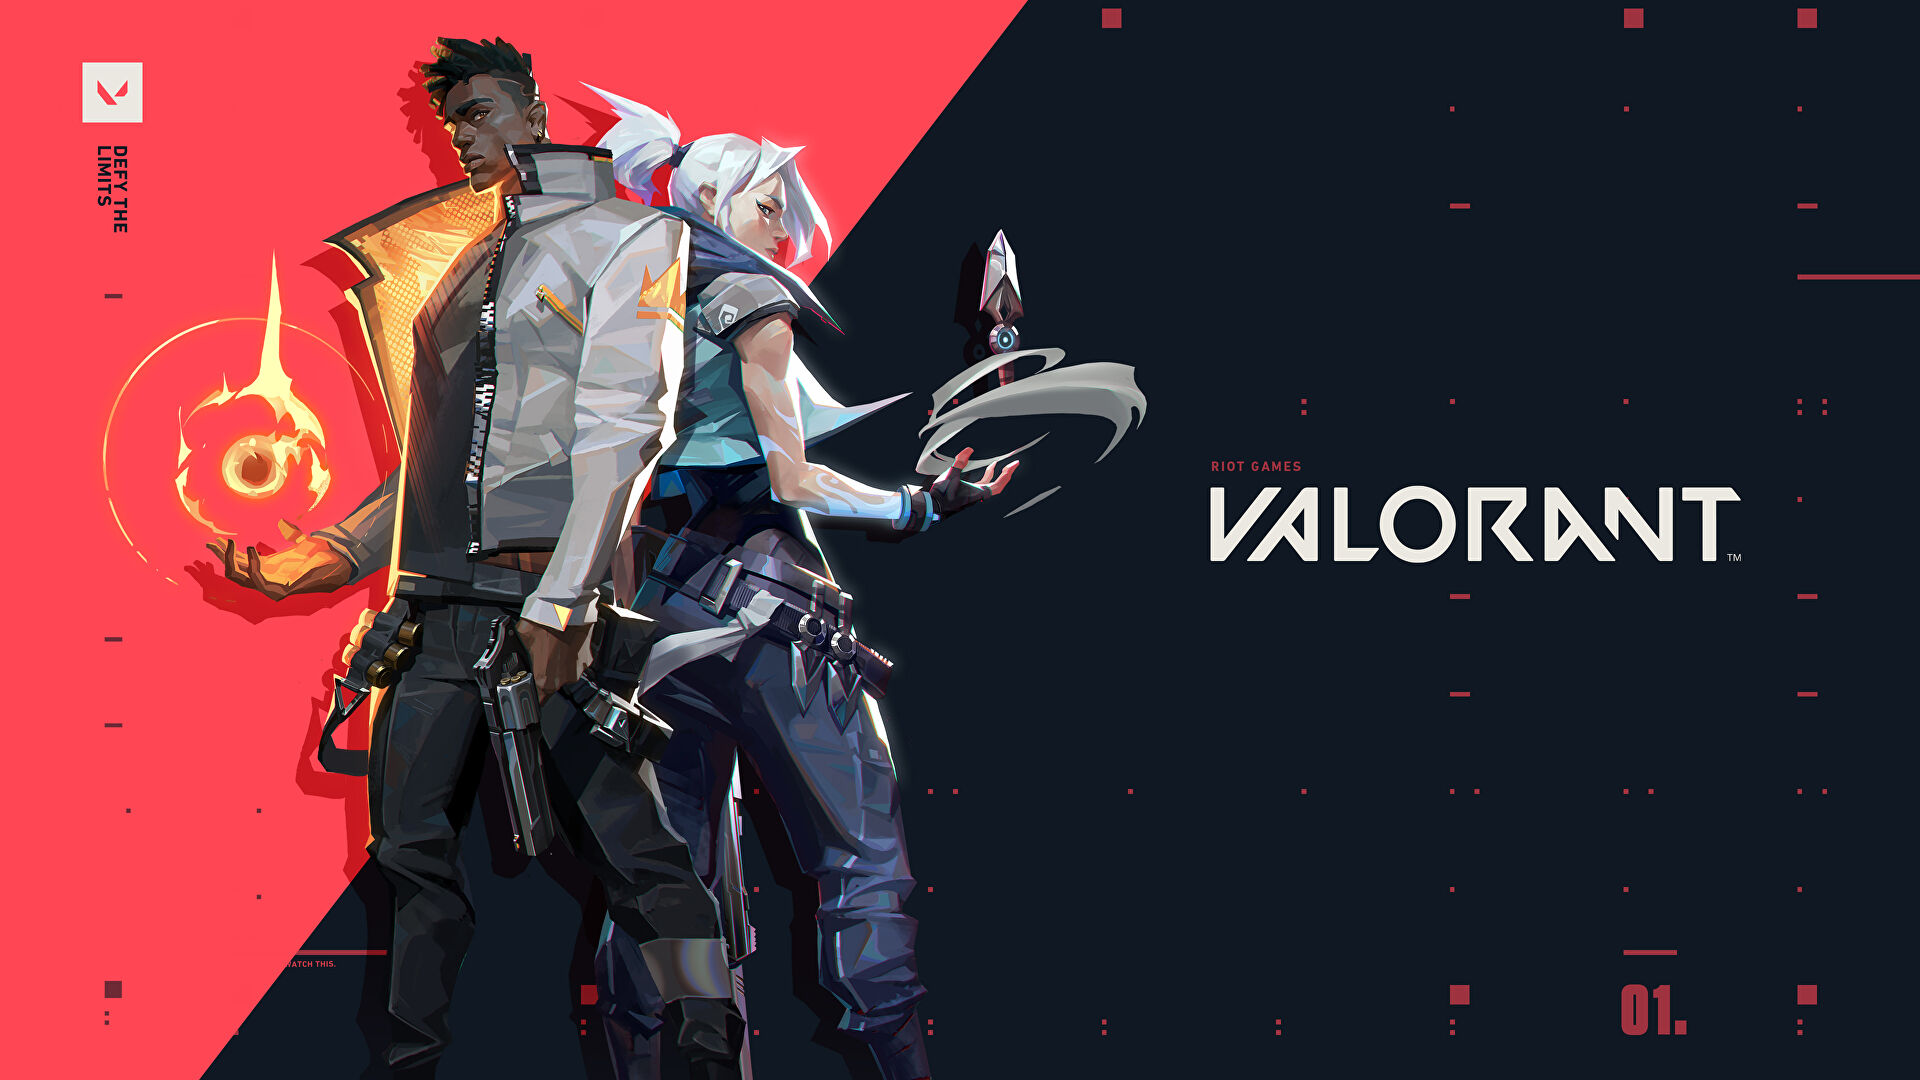 """Valorant error codes list: how to solve """"something unusual has happened"""", Error 43, and more - Download Valorant error codes list: how to solve """"something unusual has happened"""", Error 43, and more for FREE - Free Cheats for Games"""